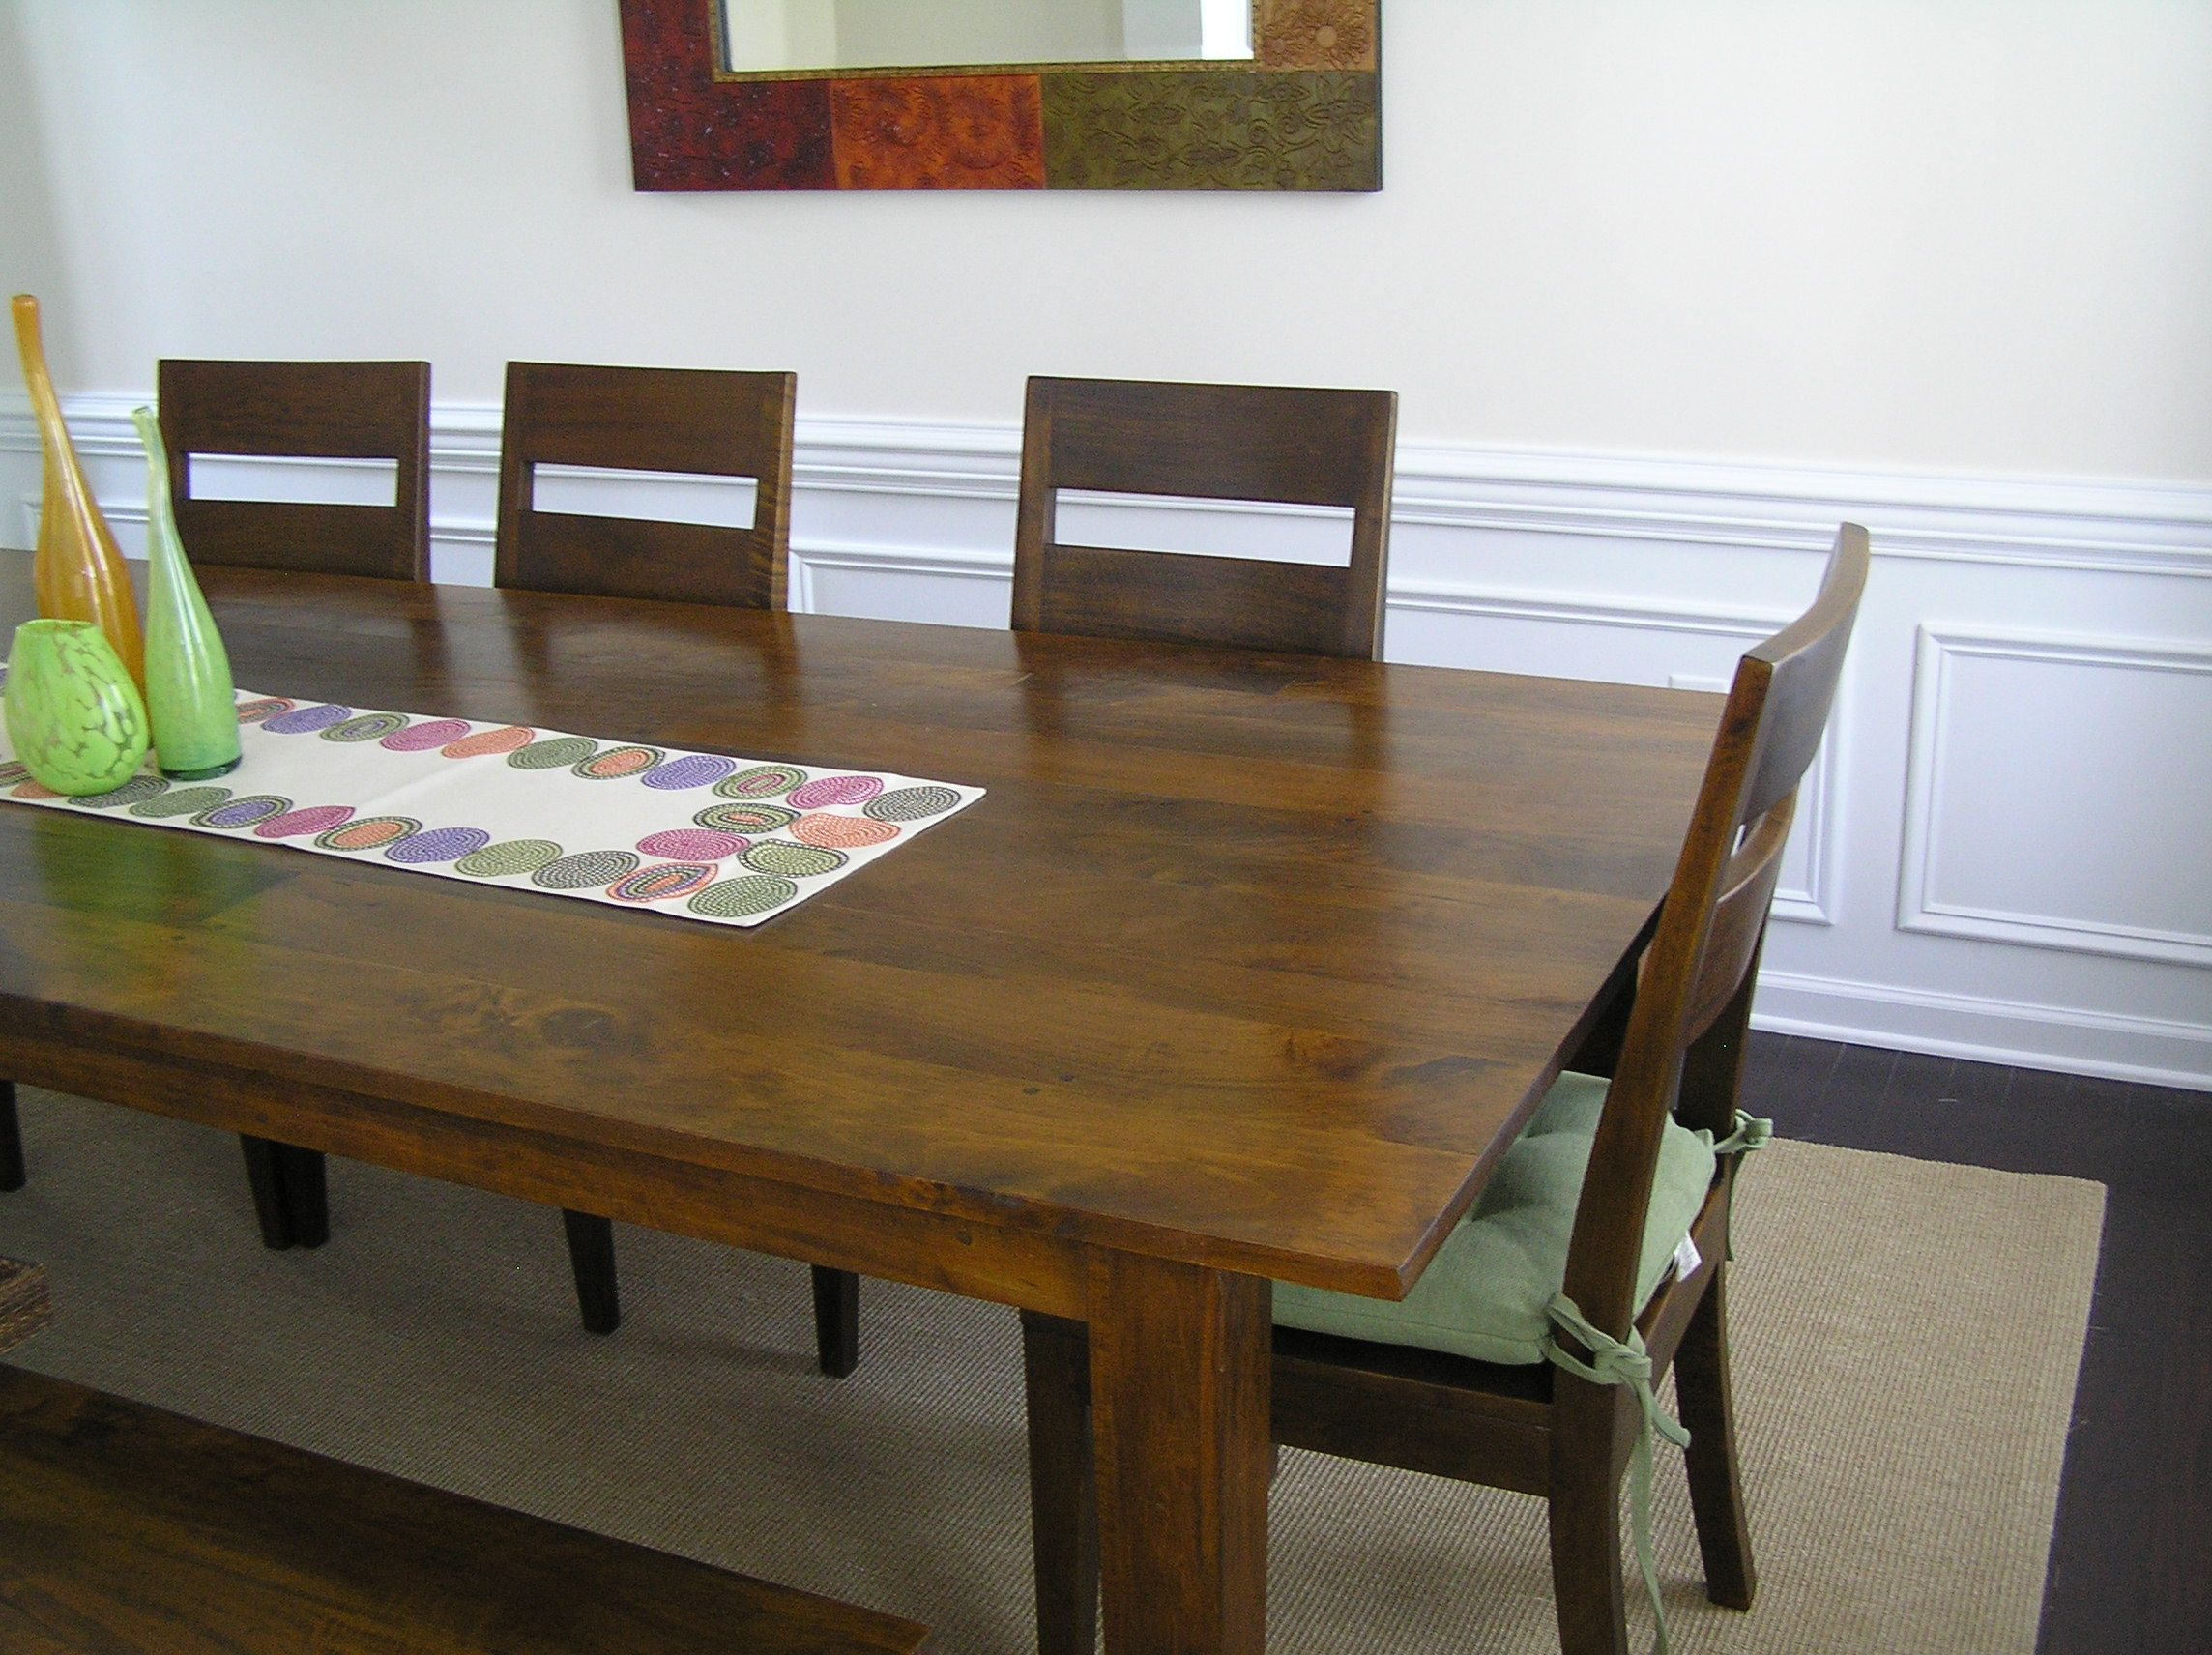 Crate and barrel basque honey dining set